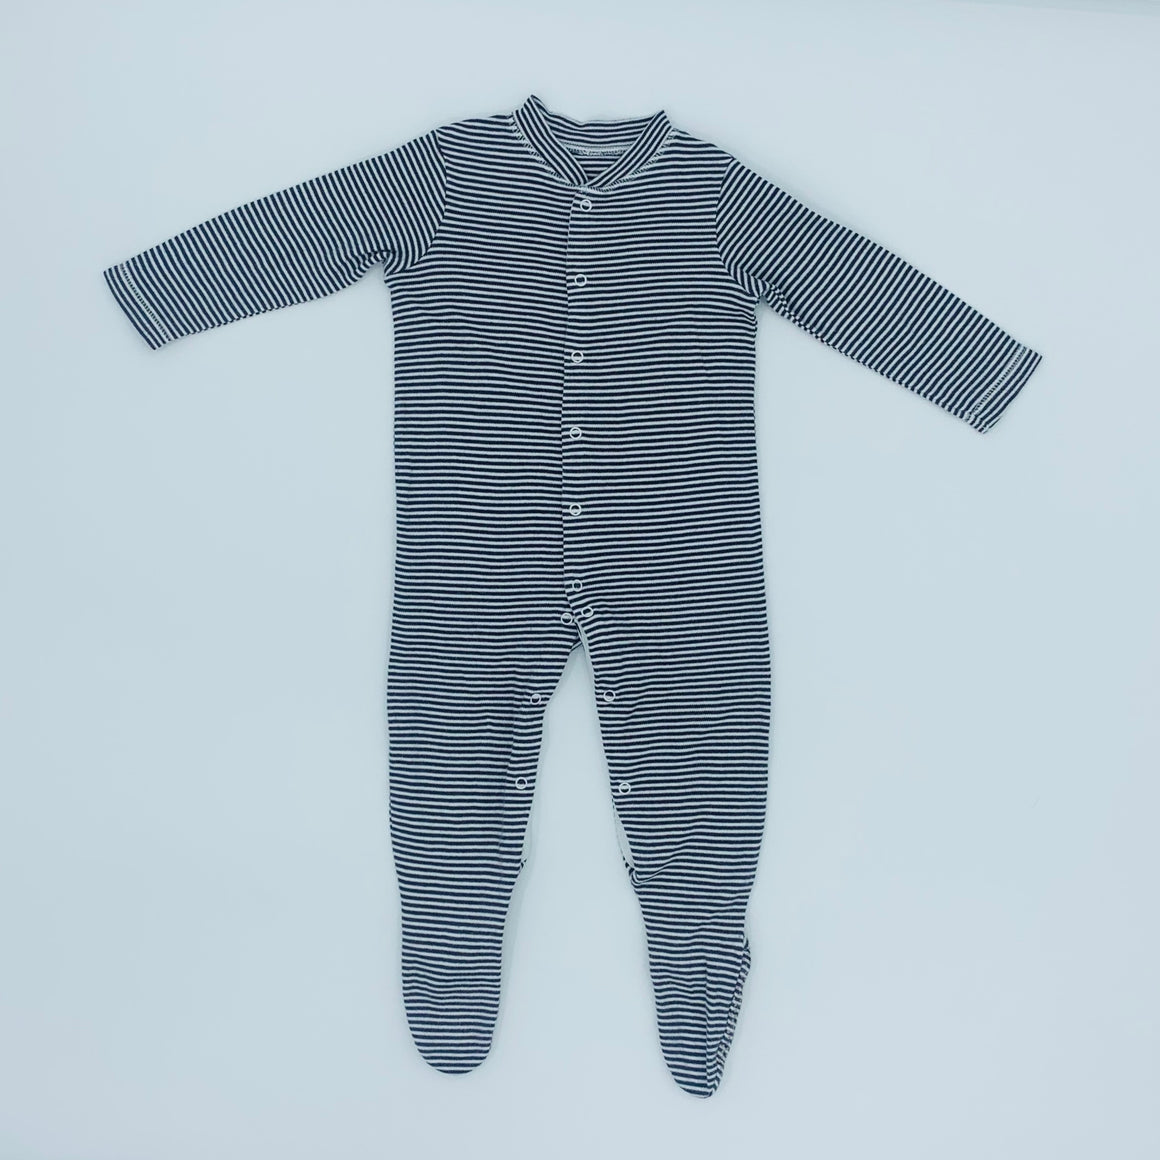 Hardly Worn John Lewis grey striped sleepsuit size 9-12 months